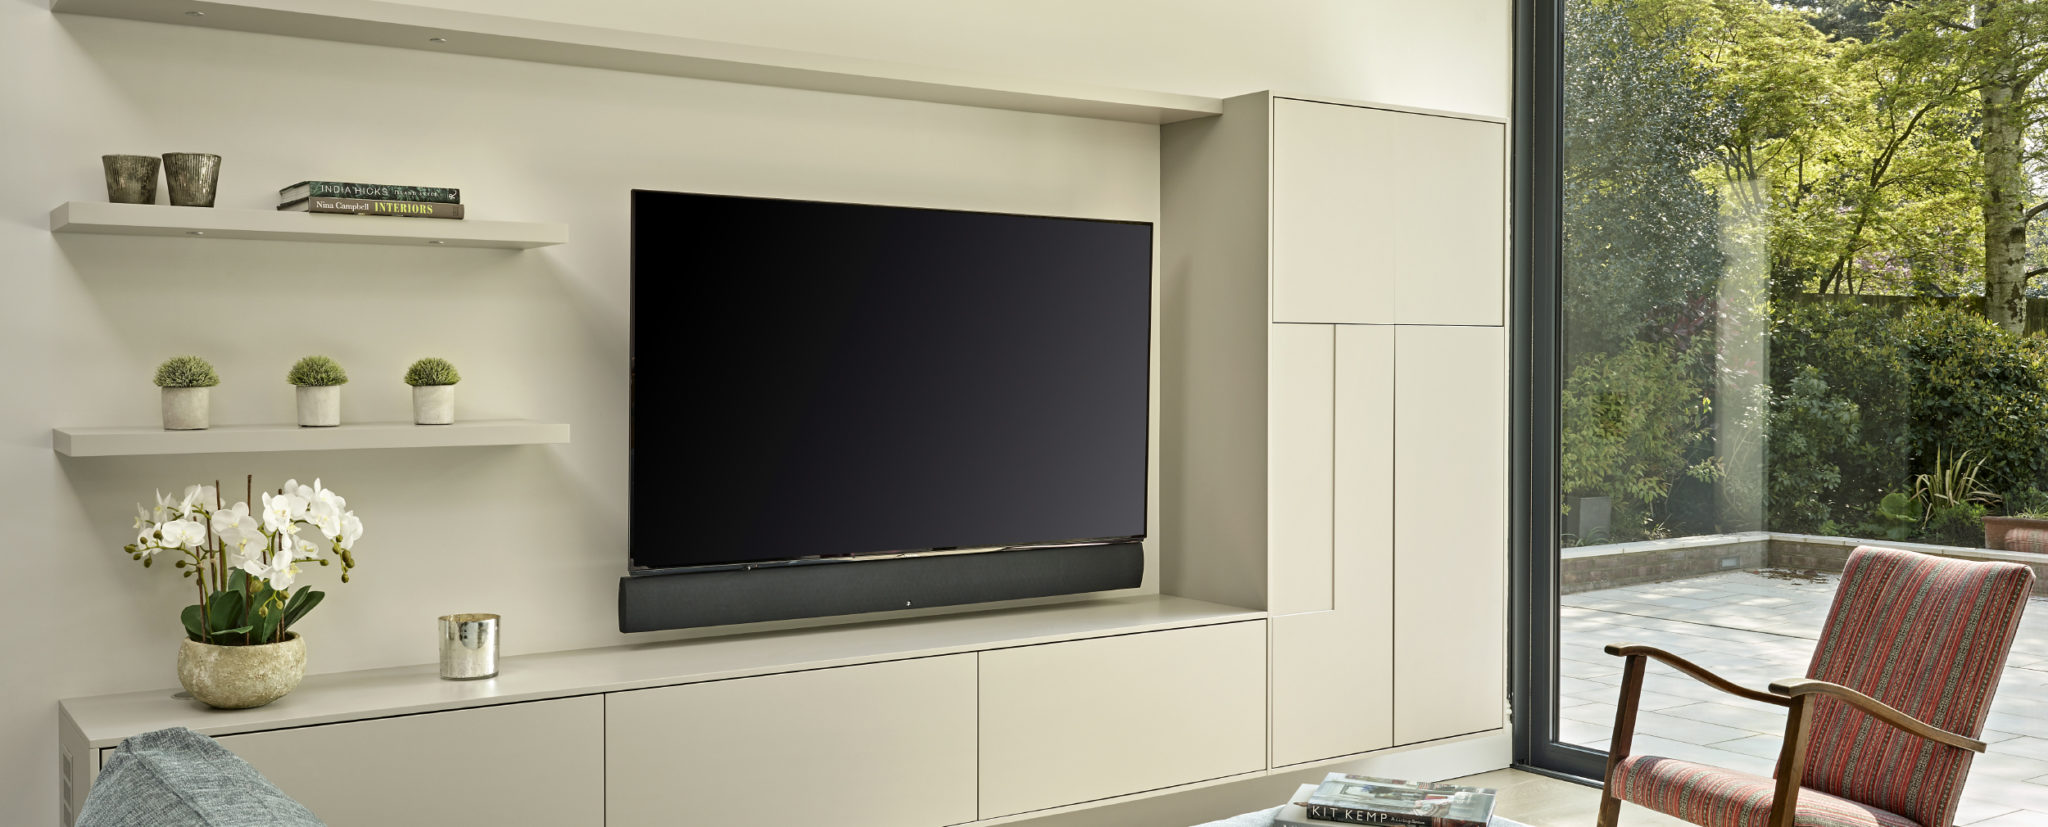 Media wall and TV unit for Wimbledon project